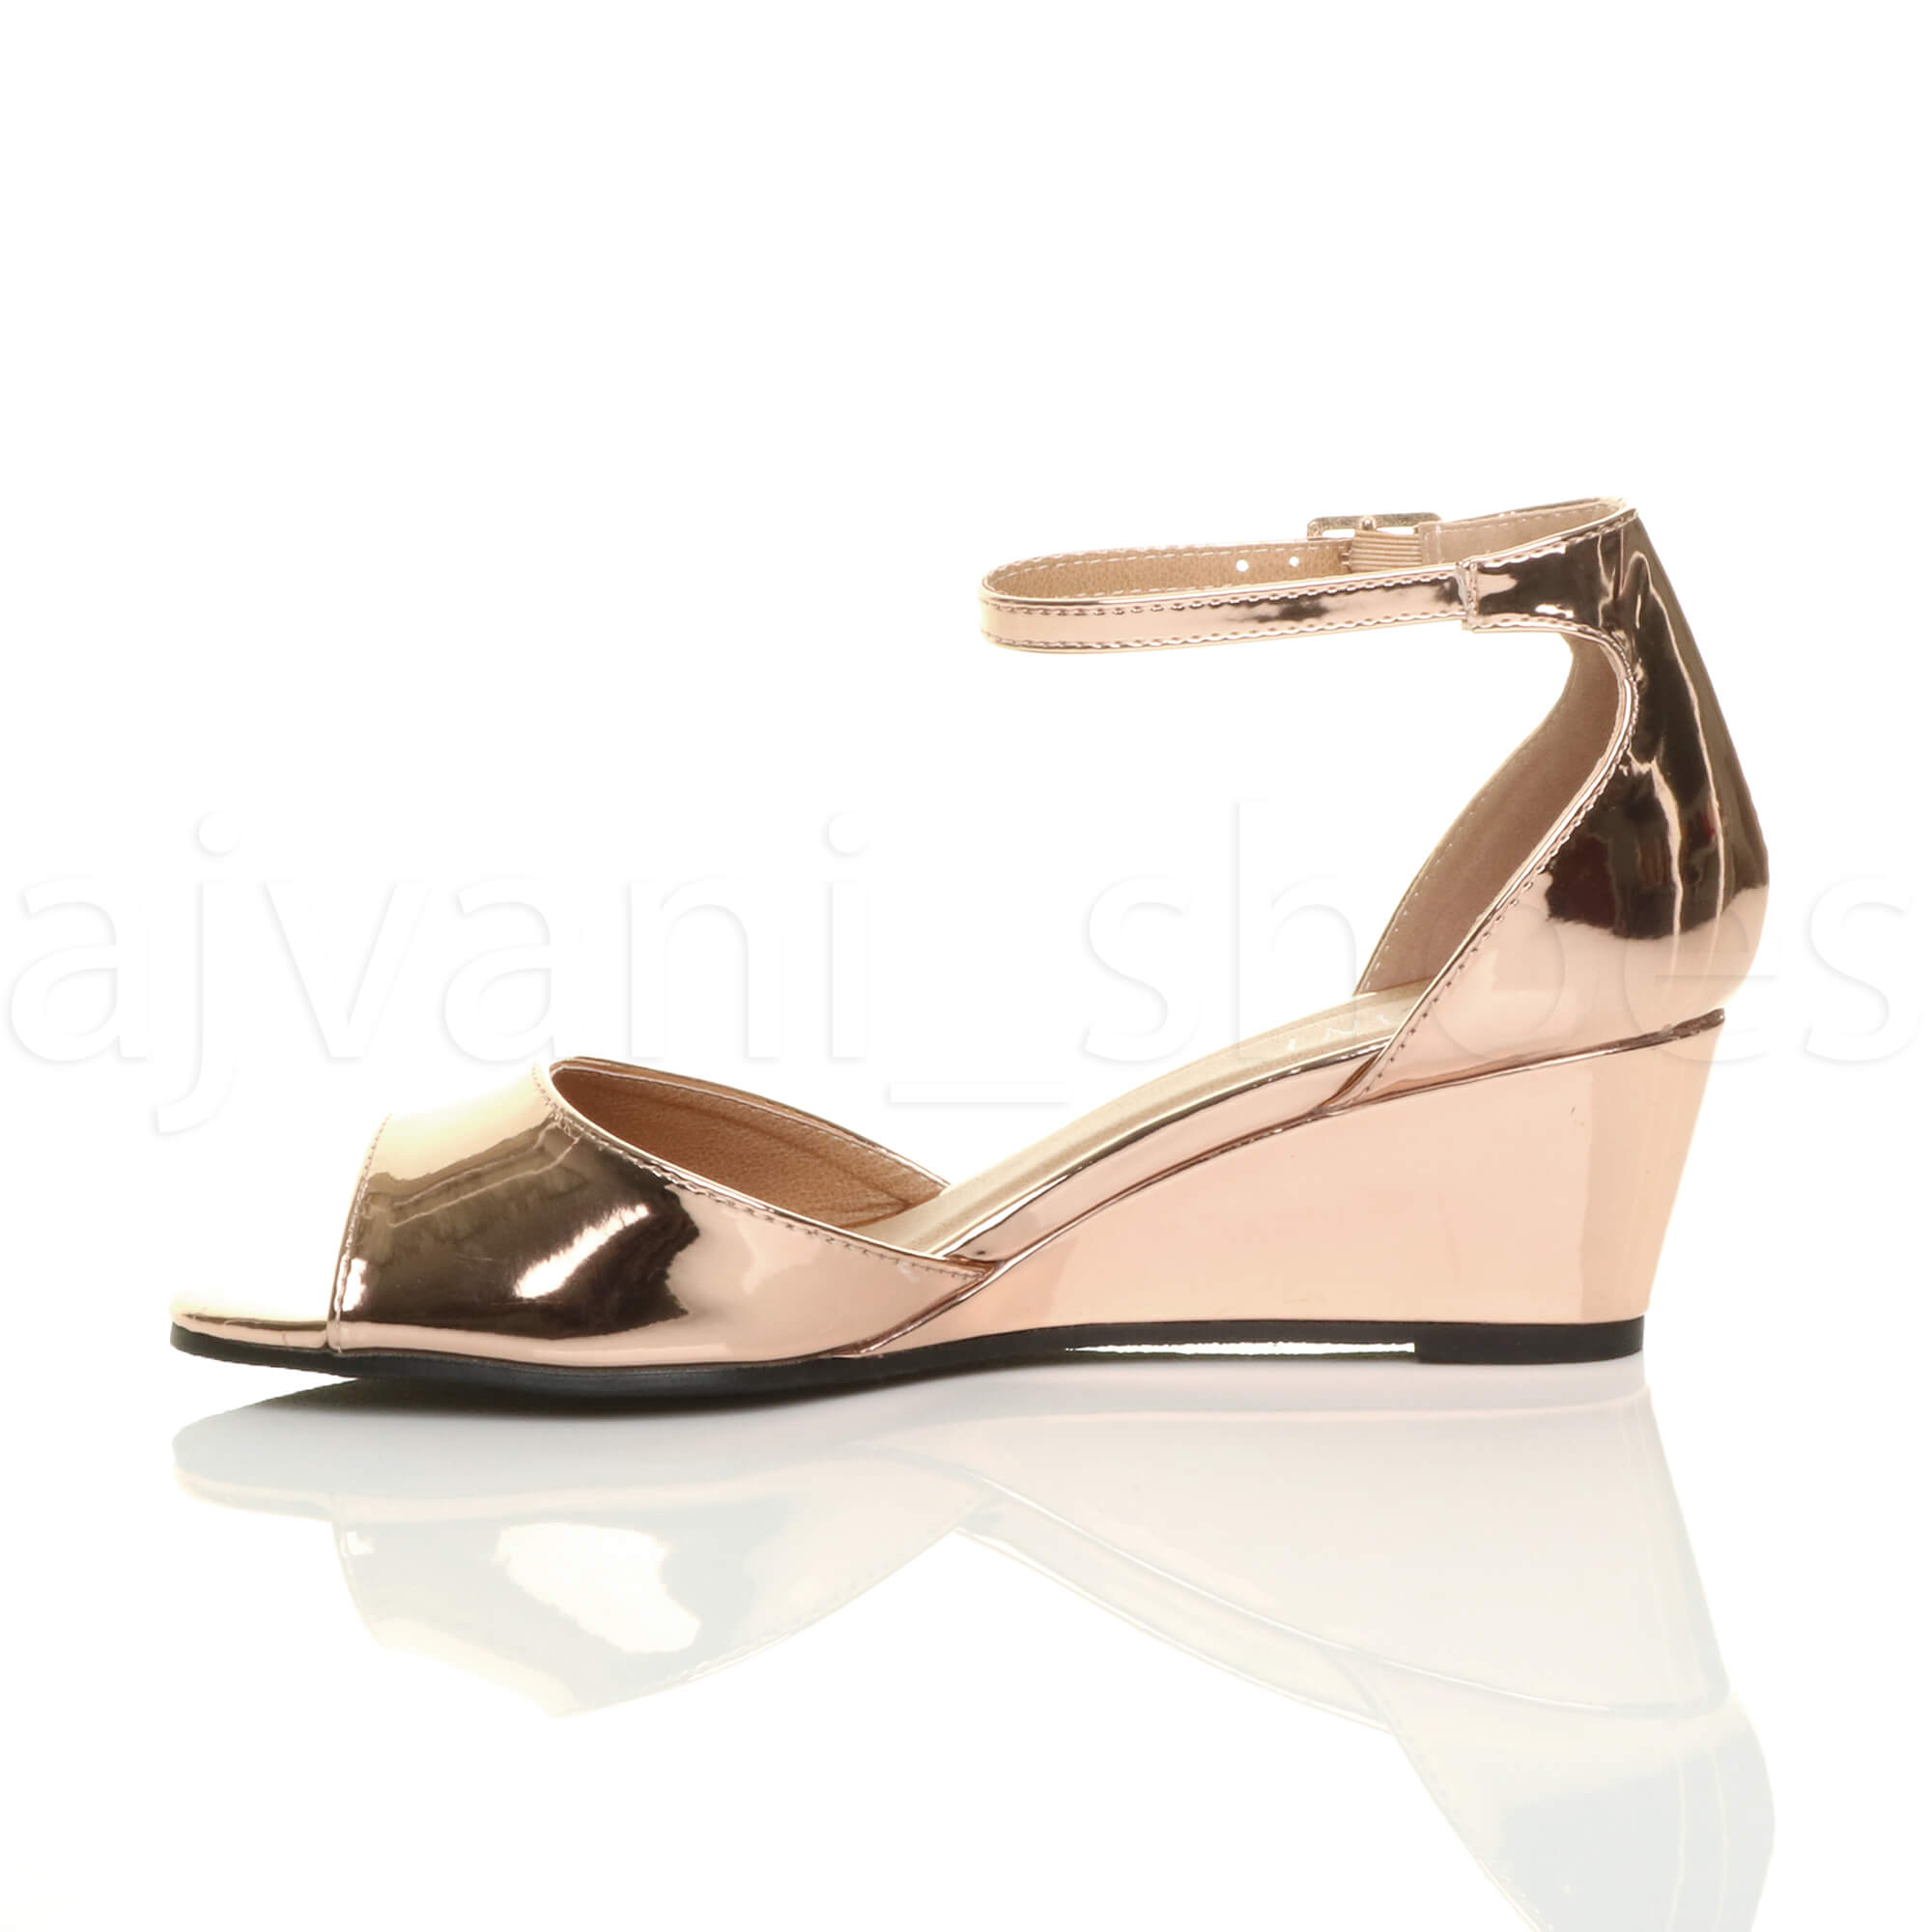 WOMENS-LADIES-LOW-MID-WEDGE-HEEL-ANKLE-STRAP-SMART-CASUAL-EVENING-SANDALS-SIZE thumbnail 132